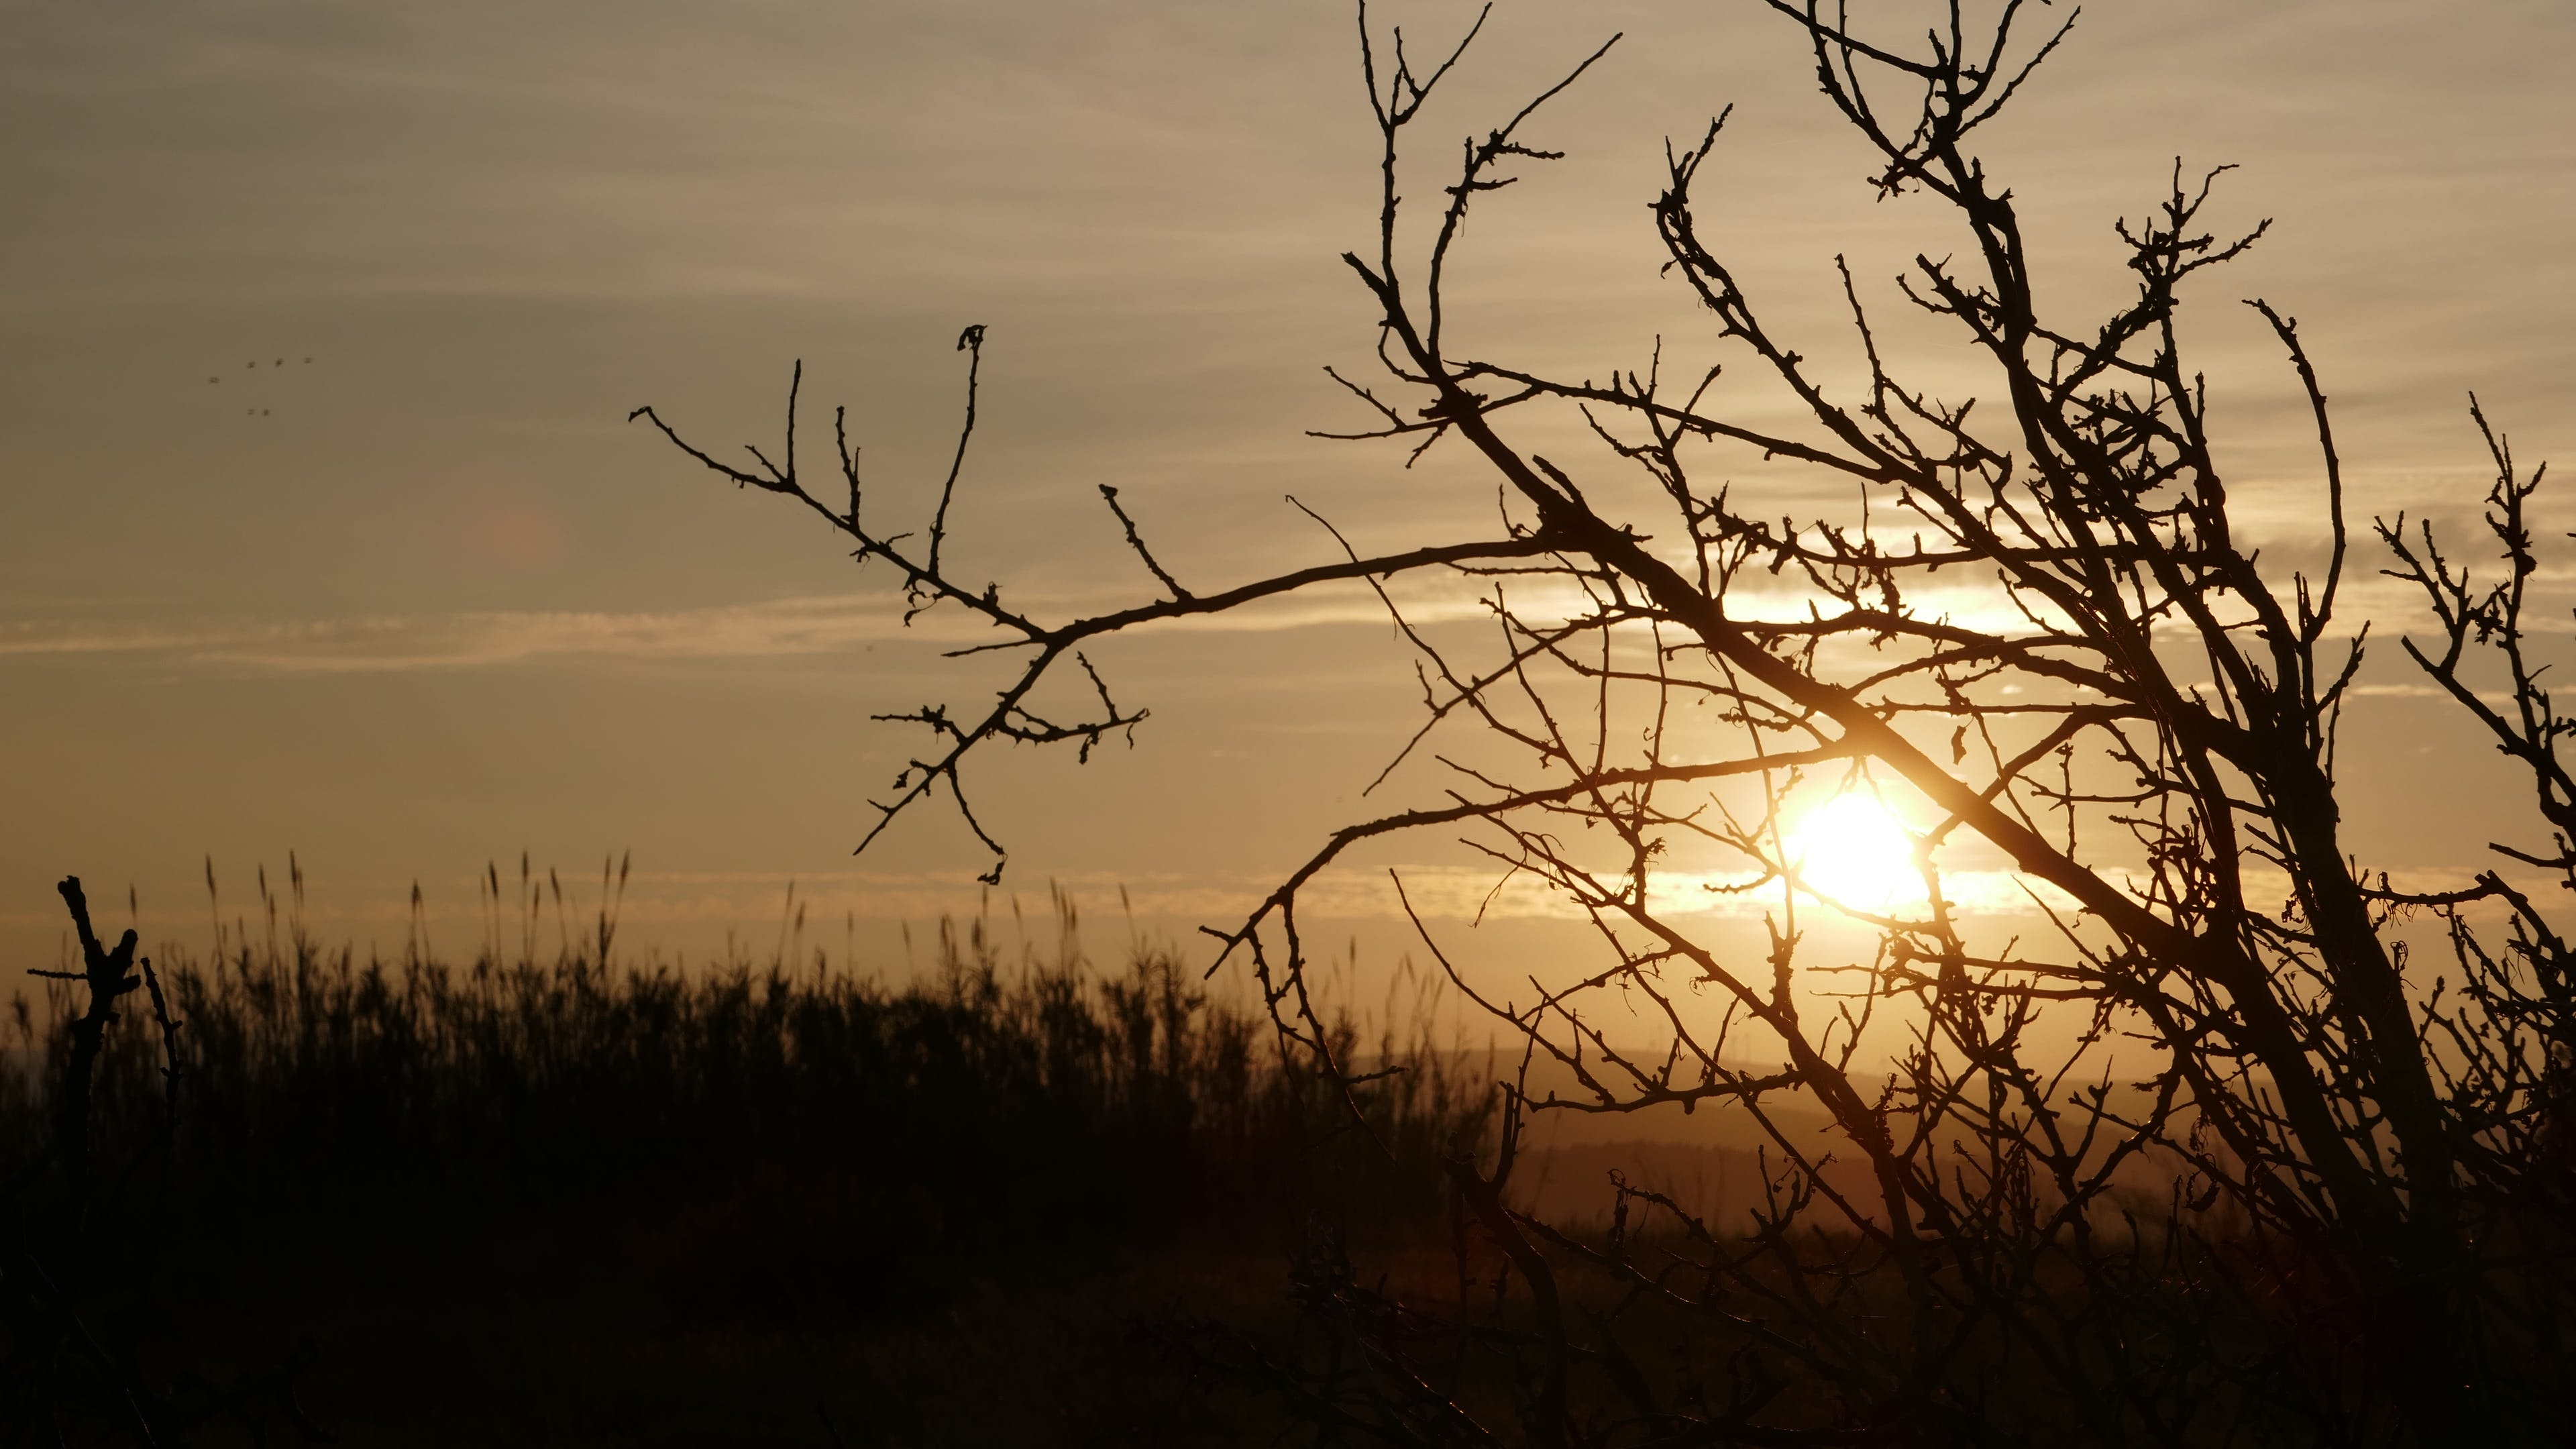 Free stock photo of golden hints behind tree branches, sunset in untouched nature